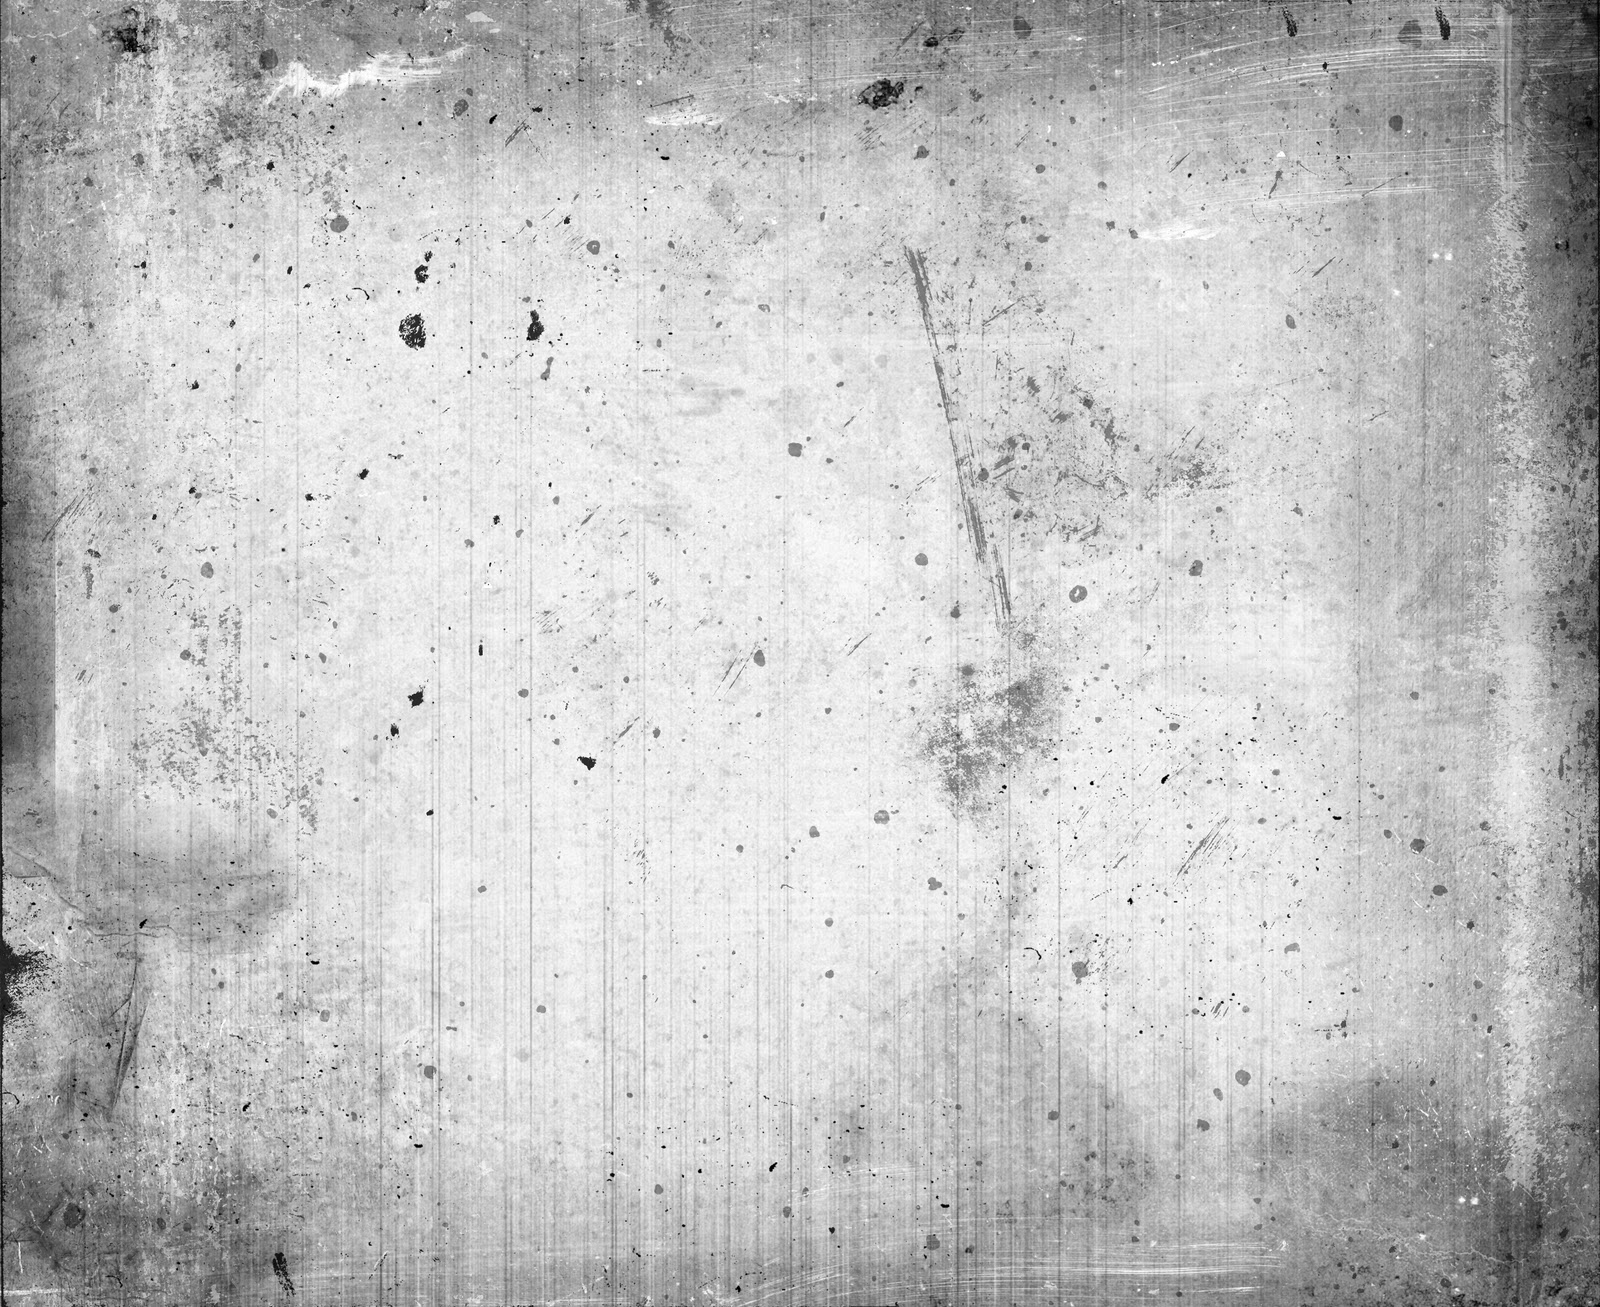 Free Grunge Texture Backgrounds For PowerPoint - Abstract and ...